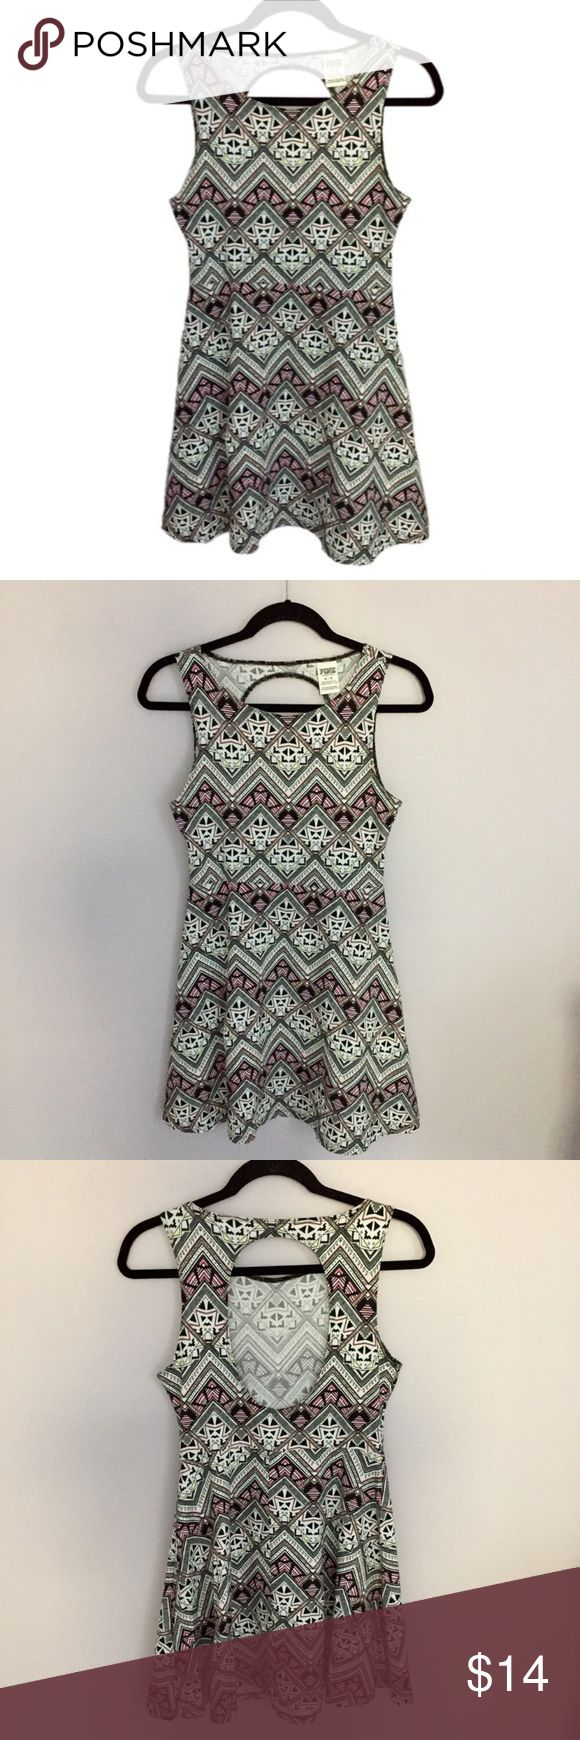 """PINK Victoria's Secret Aztec Print Dress PINK Victoria's Secret Aztec Print Dress. Cut out in the back. I love this pattern! Armpit to armpit 25"""" Waist 27"""" Entire length shoulder to bottom 32.5"""" Excellent Condition! Let me know if you have any questions! ✅ I LOVE OFFERS ✅ 💜INSTAGRAM: @ocaputostyle PINK Victoria's Secret Dresses"""